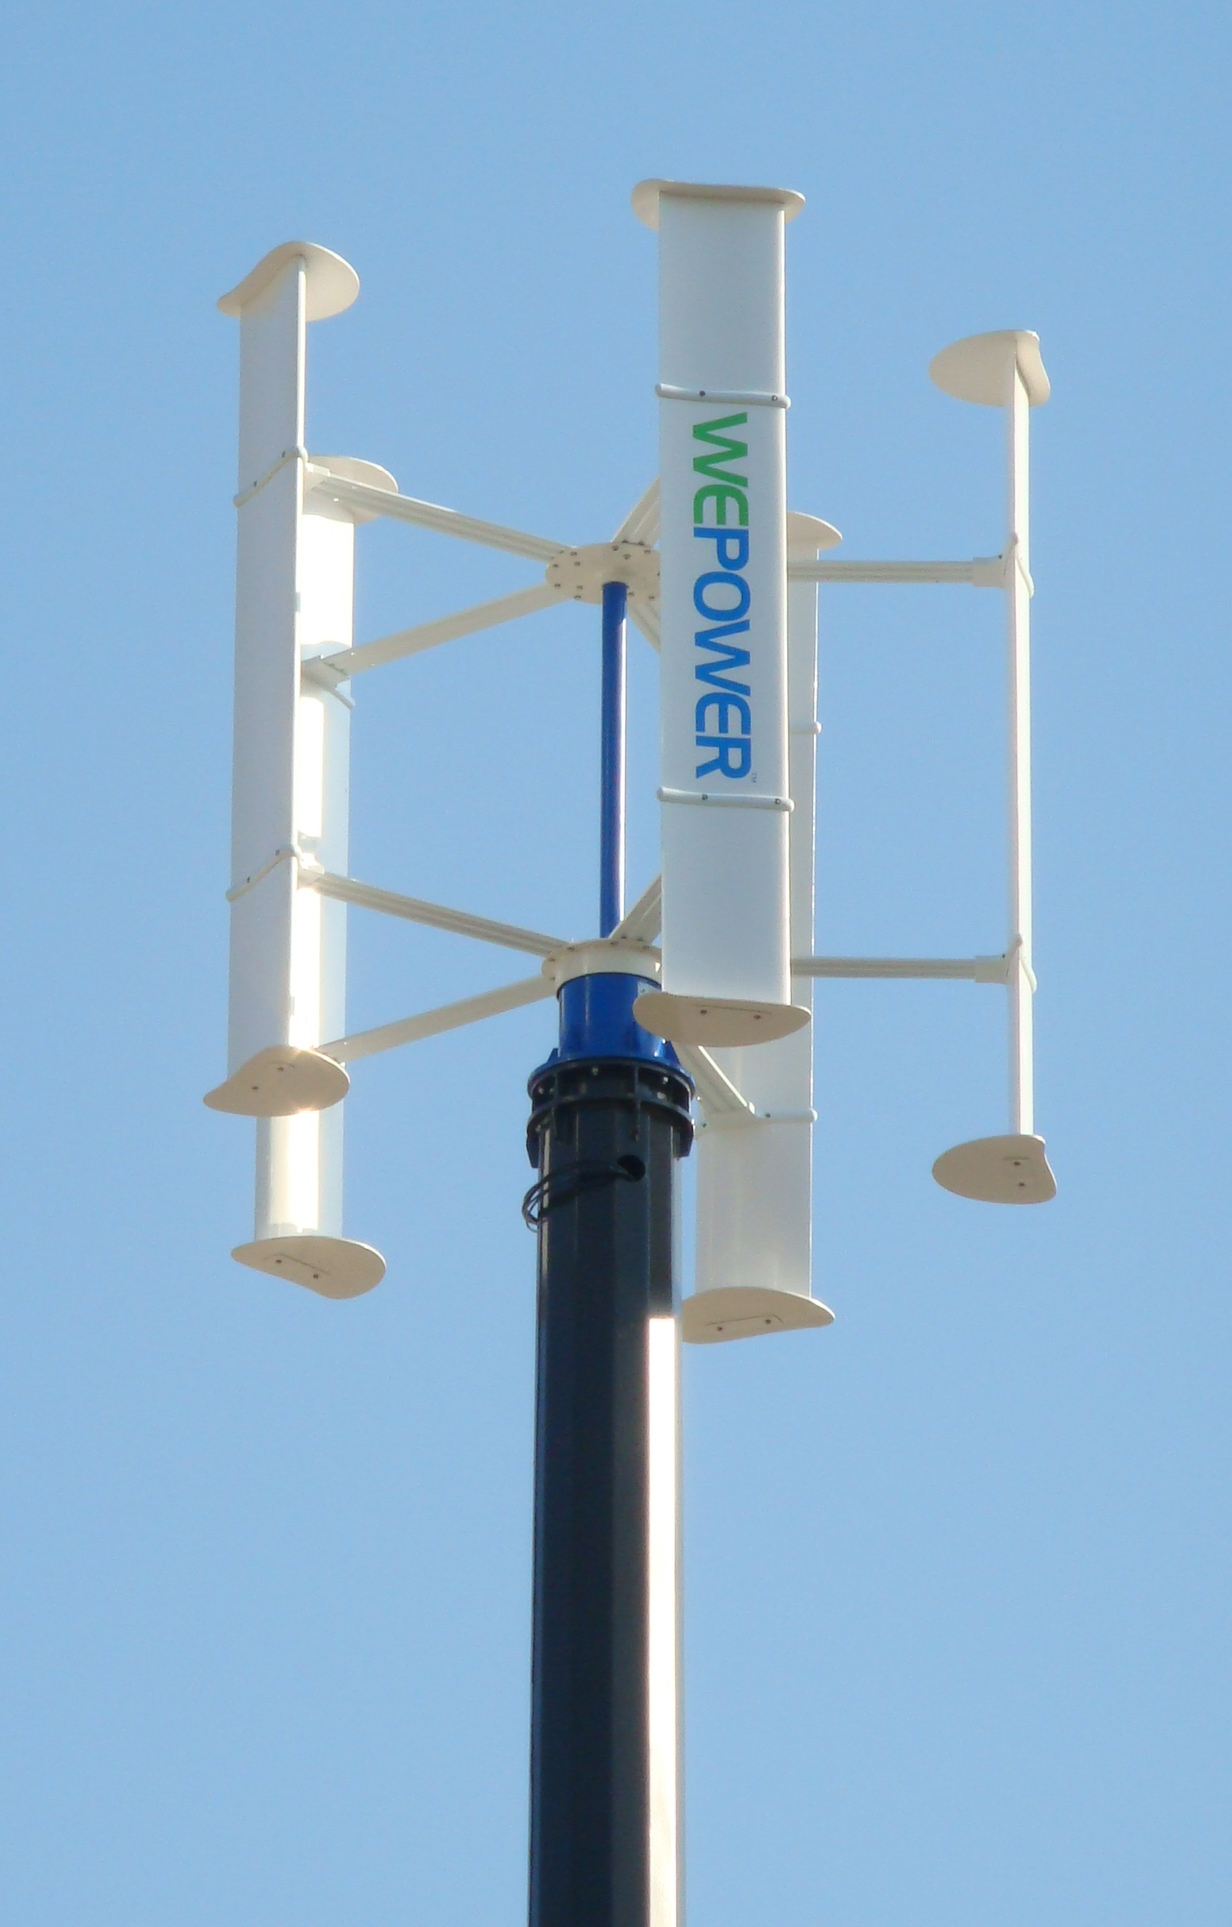 Rooftop Wind Power - Rooftop and Pole Mounted VAWT